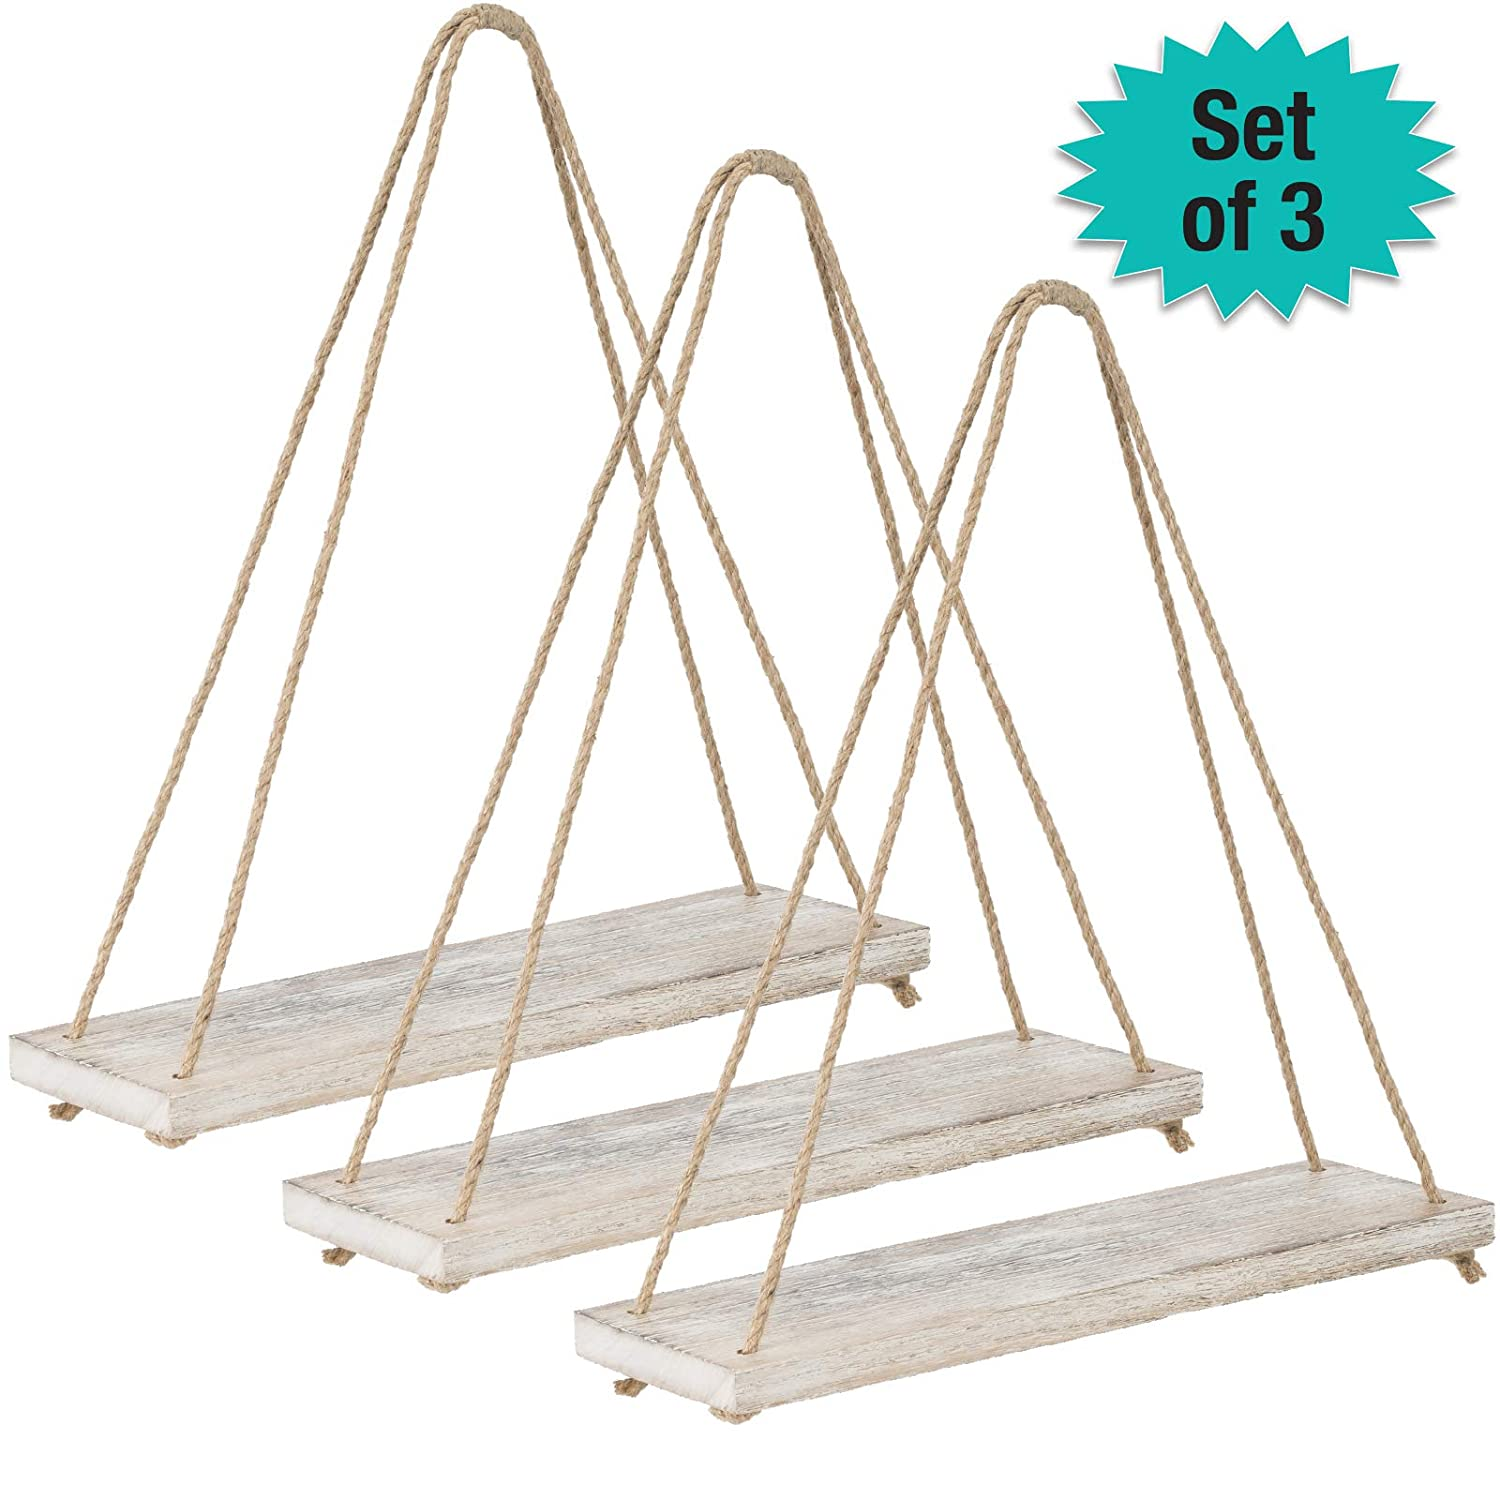 Rustic Distressed Wood Hanging Shelves: 17-Inch with Swing Rope Floating Shelves (Brown - Pack of 3)